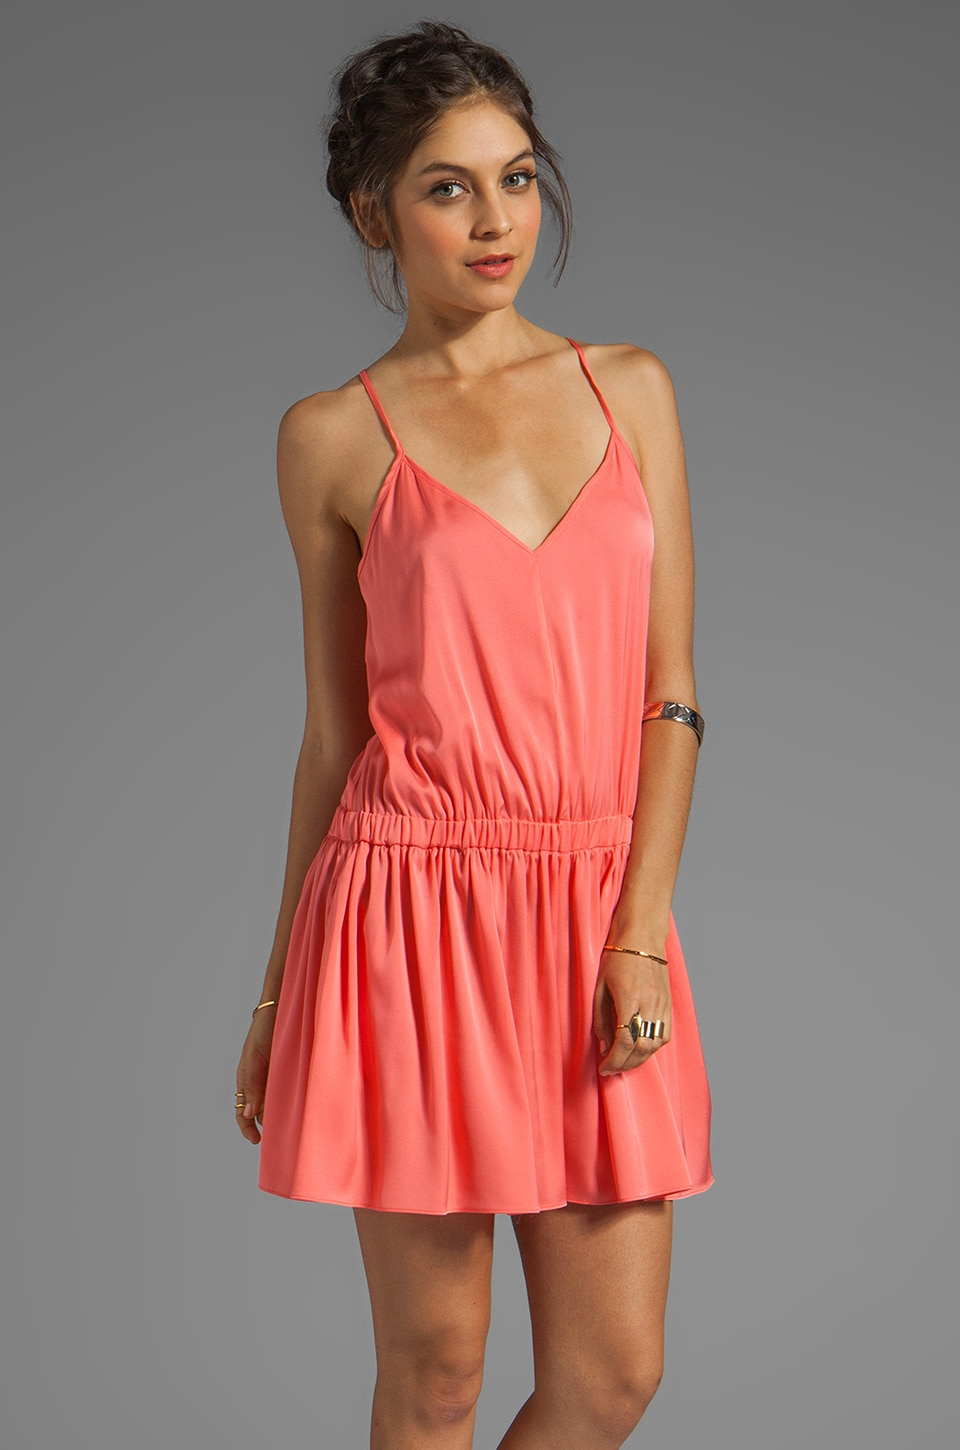 MILLY Matte Stretch Silk Racerback Romper in Fluo Melon